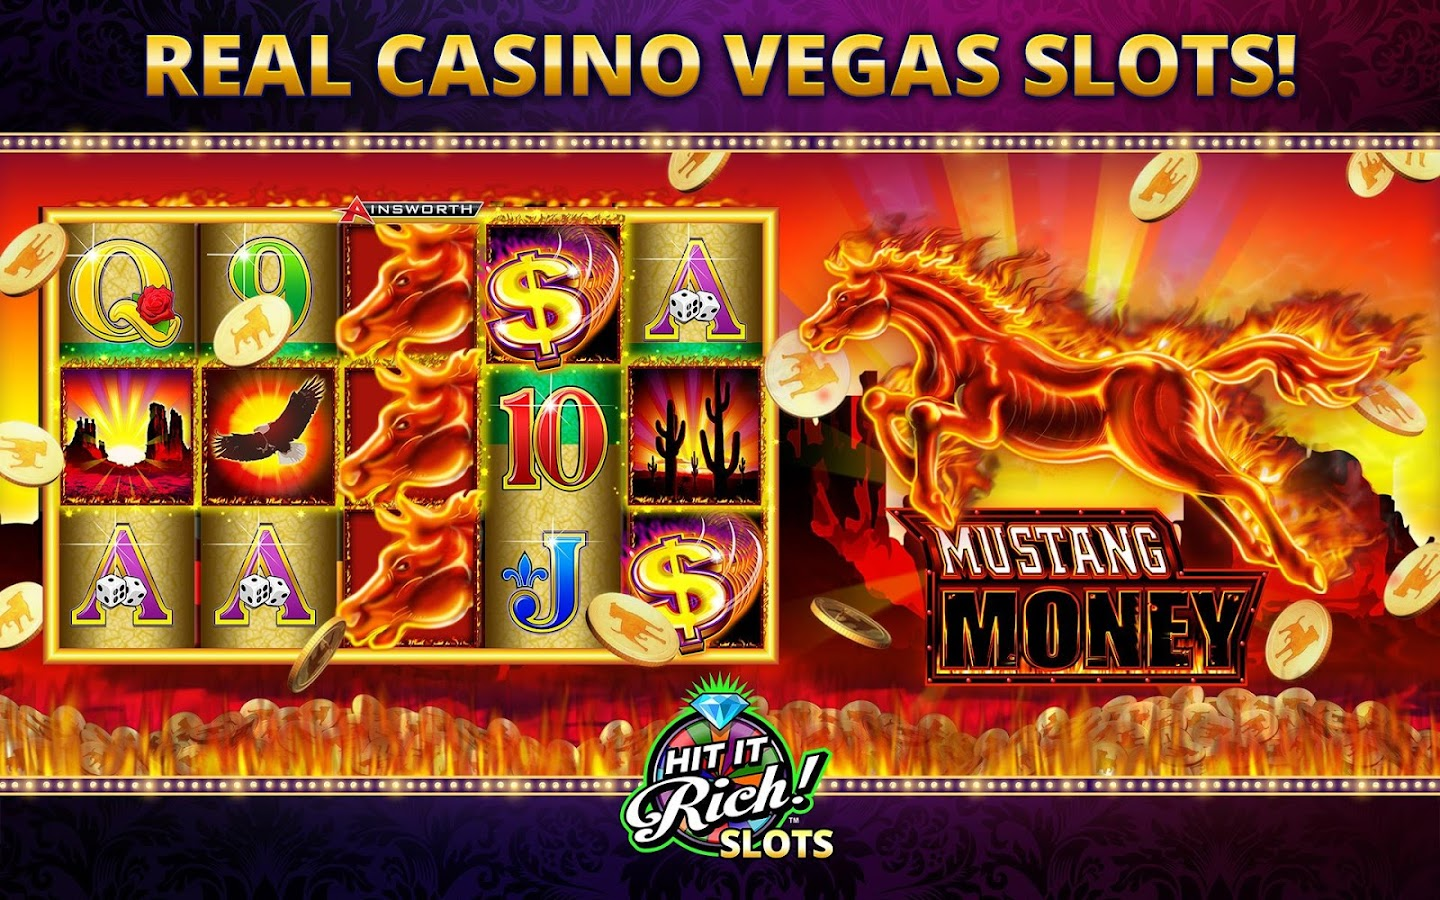 hit it rich free casino slots apk